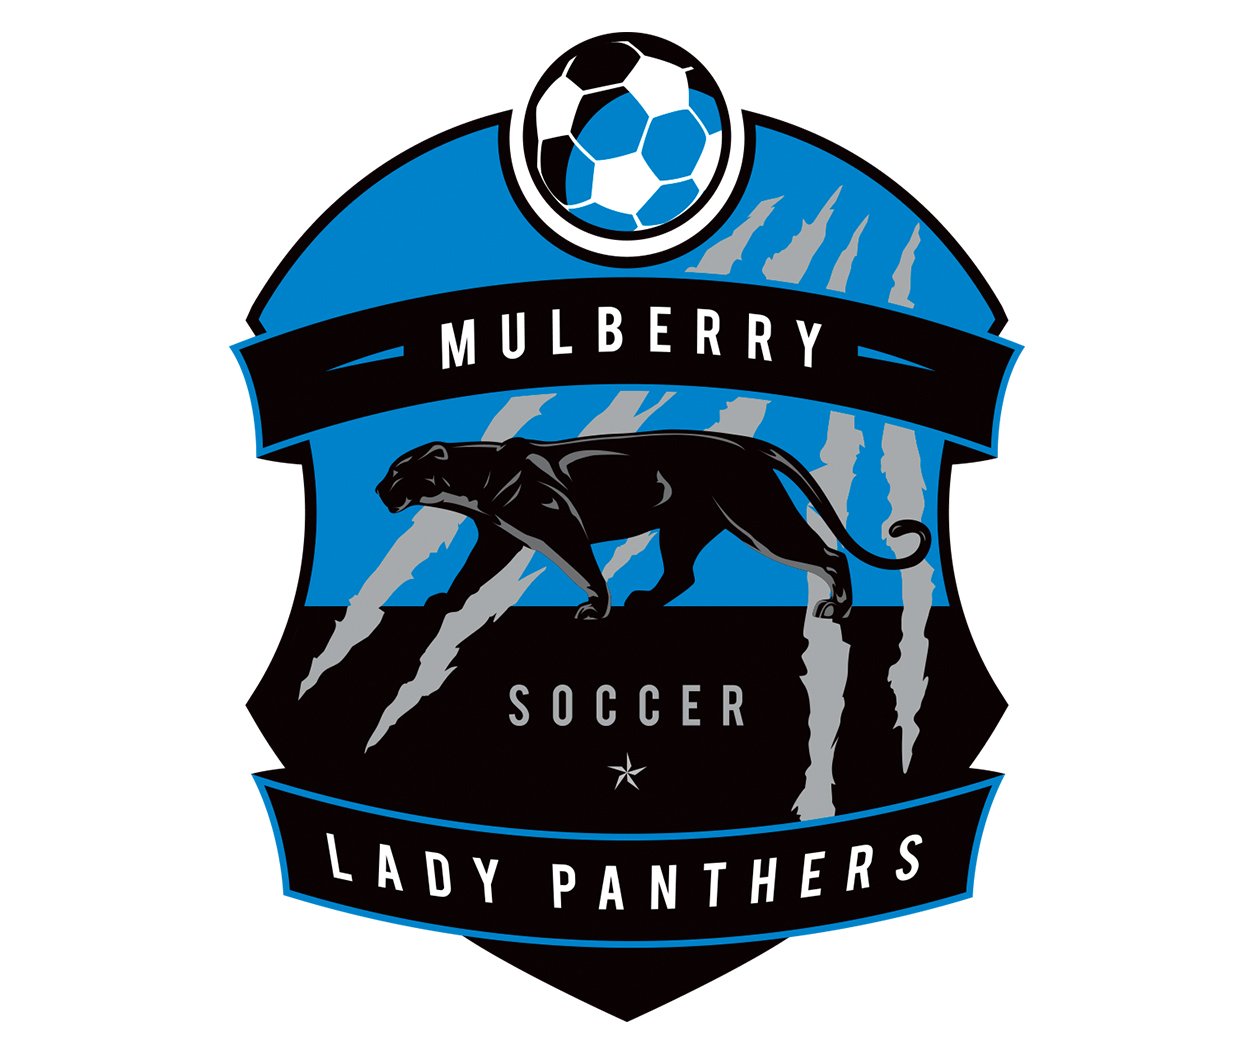 custom-soccer-logo-design-by-jordan-fretz-soccer-logo-design-for-mulberry-panthers.jpg